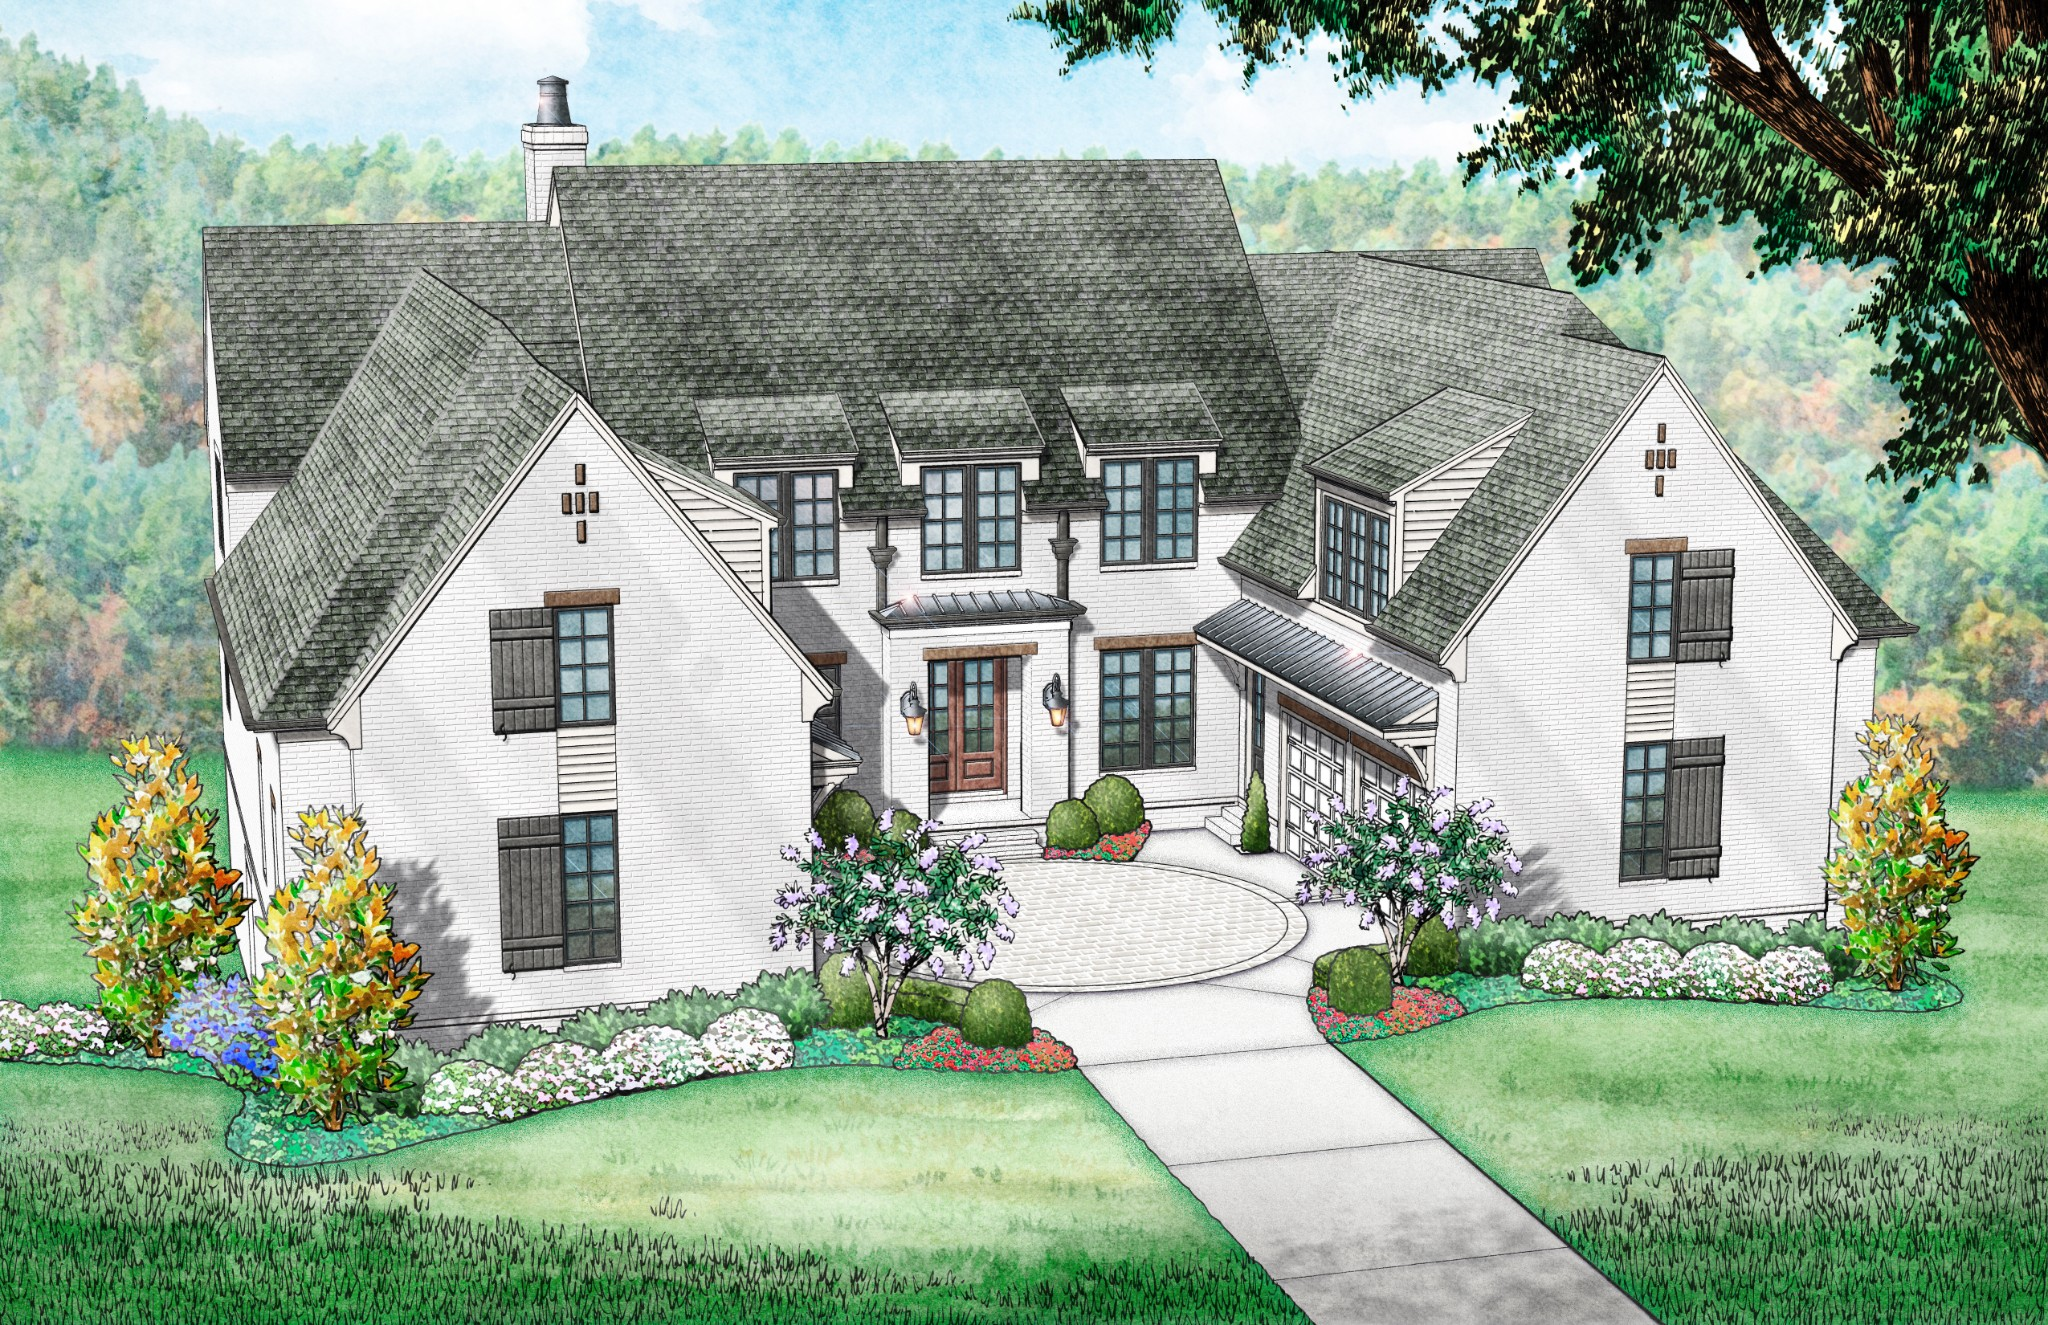 8527 Heirloom Blvd (Lot 7006) Property Photo - College Grove, TN real estate listing